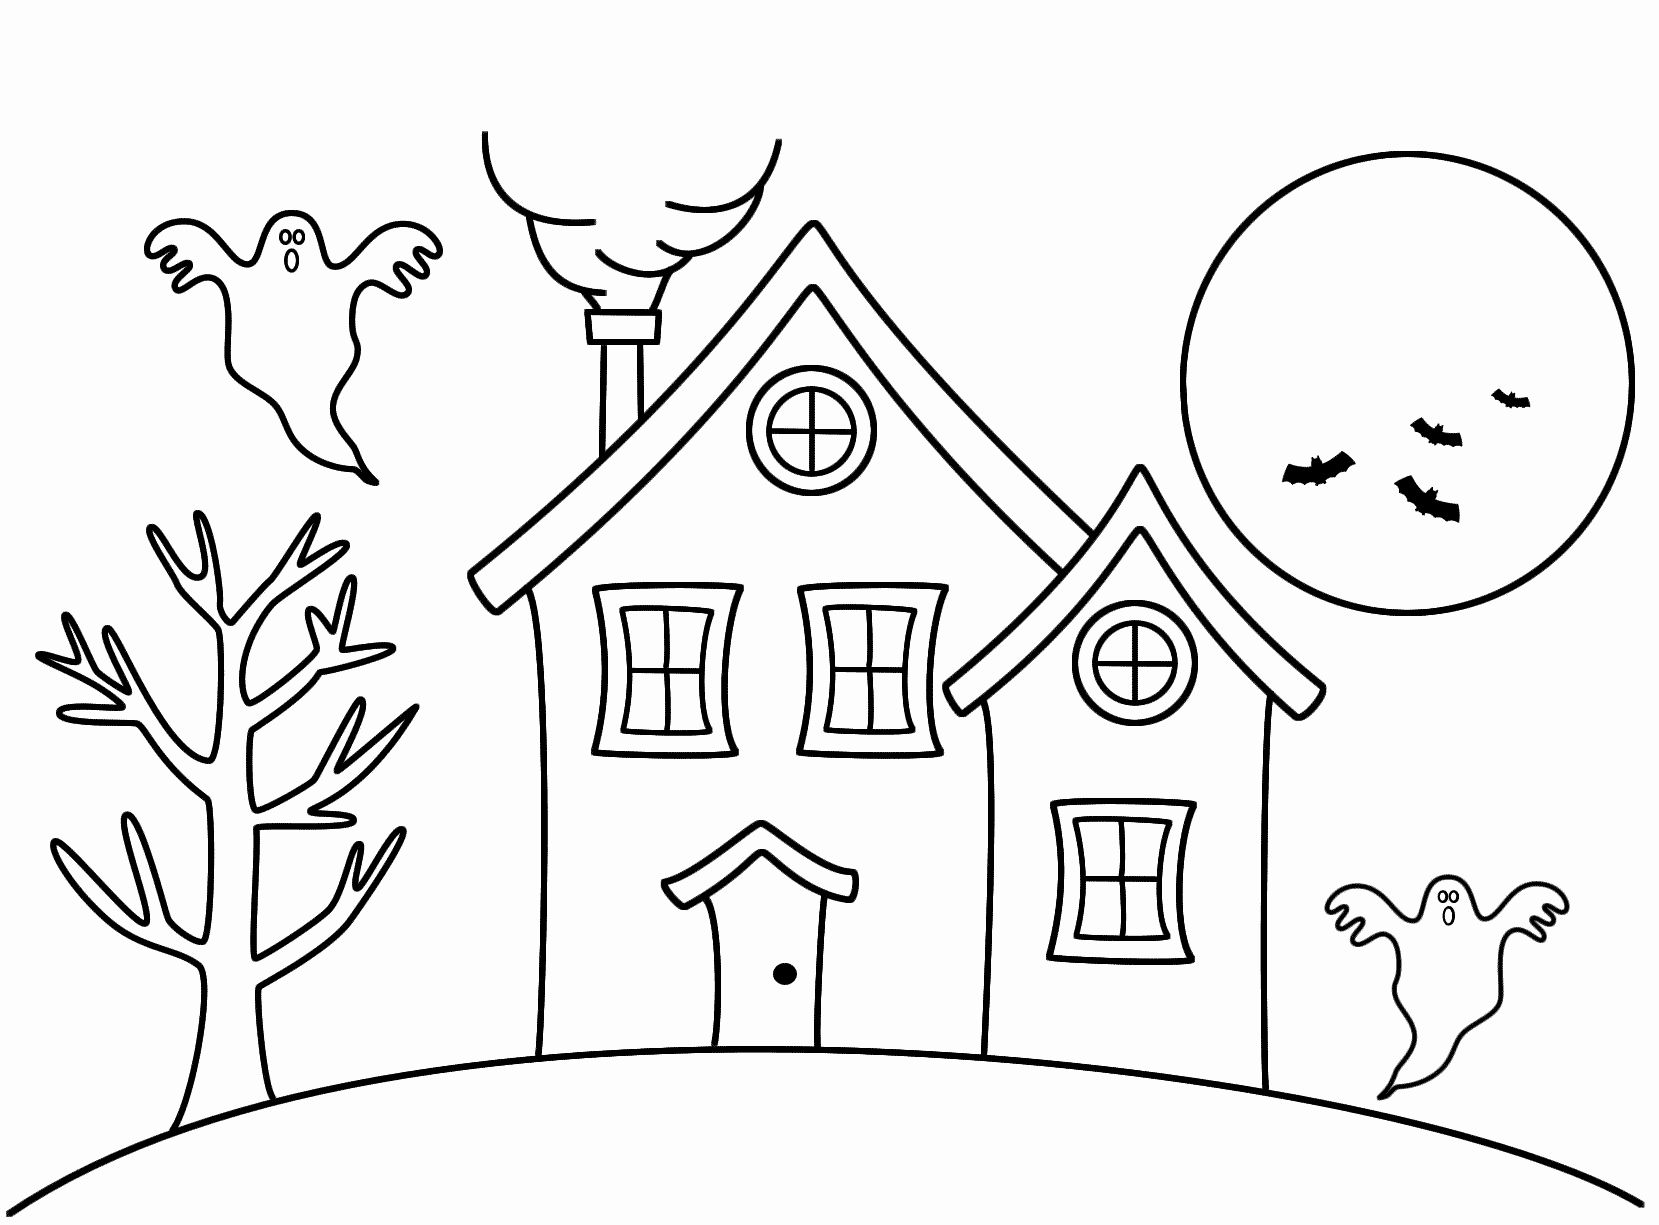 Free Printable House Coloring Pages For Kids   1225x1659